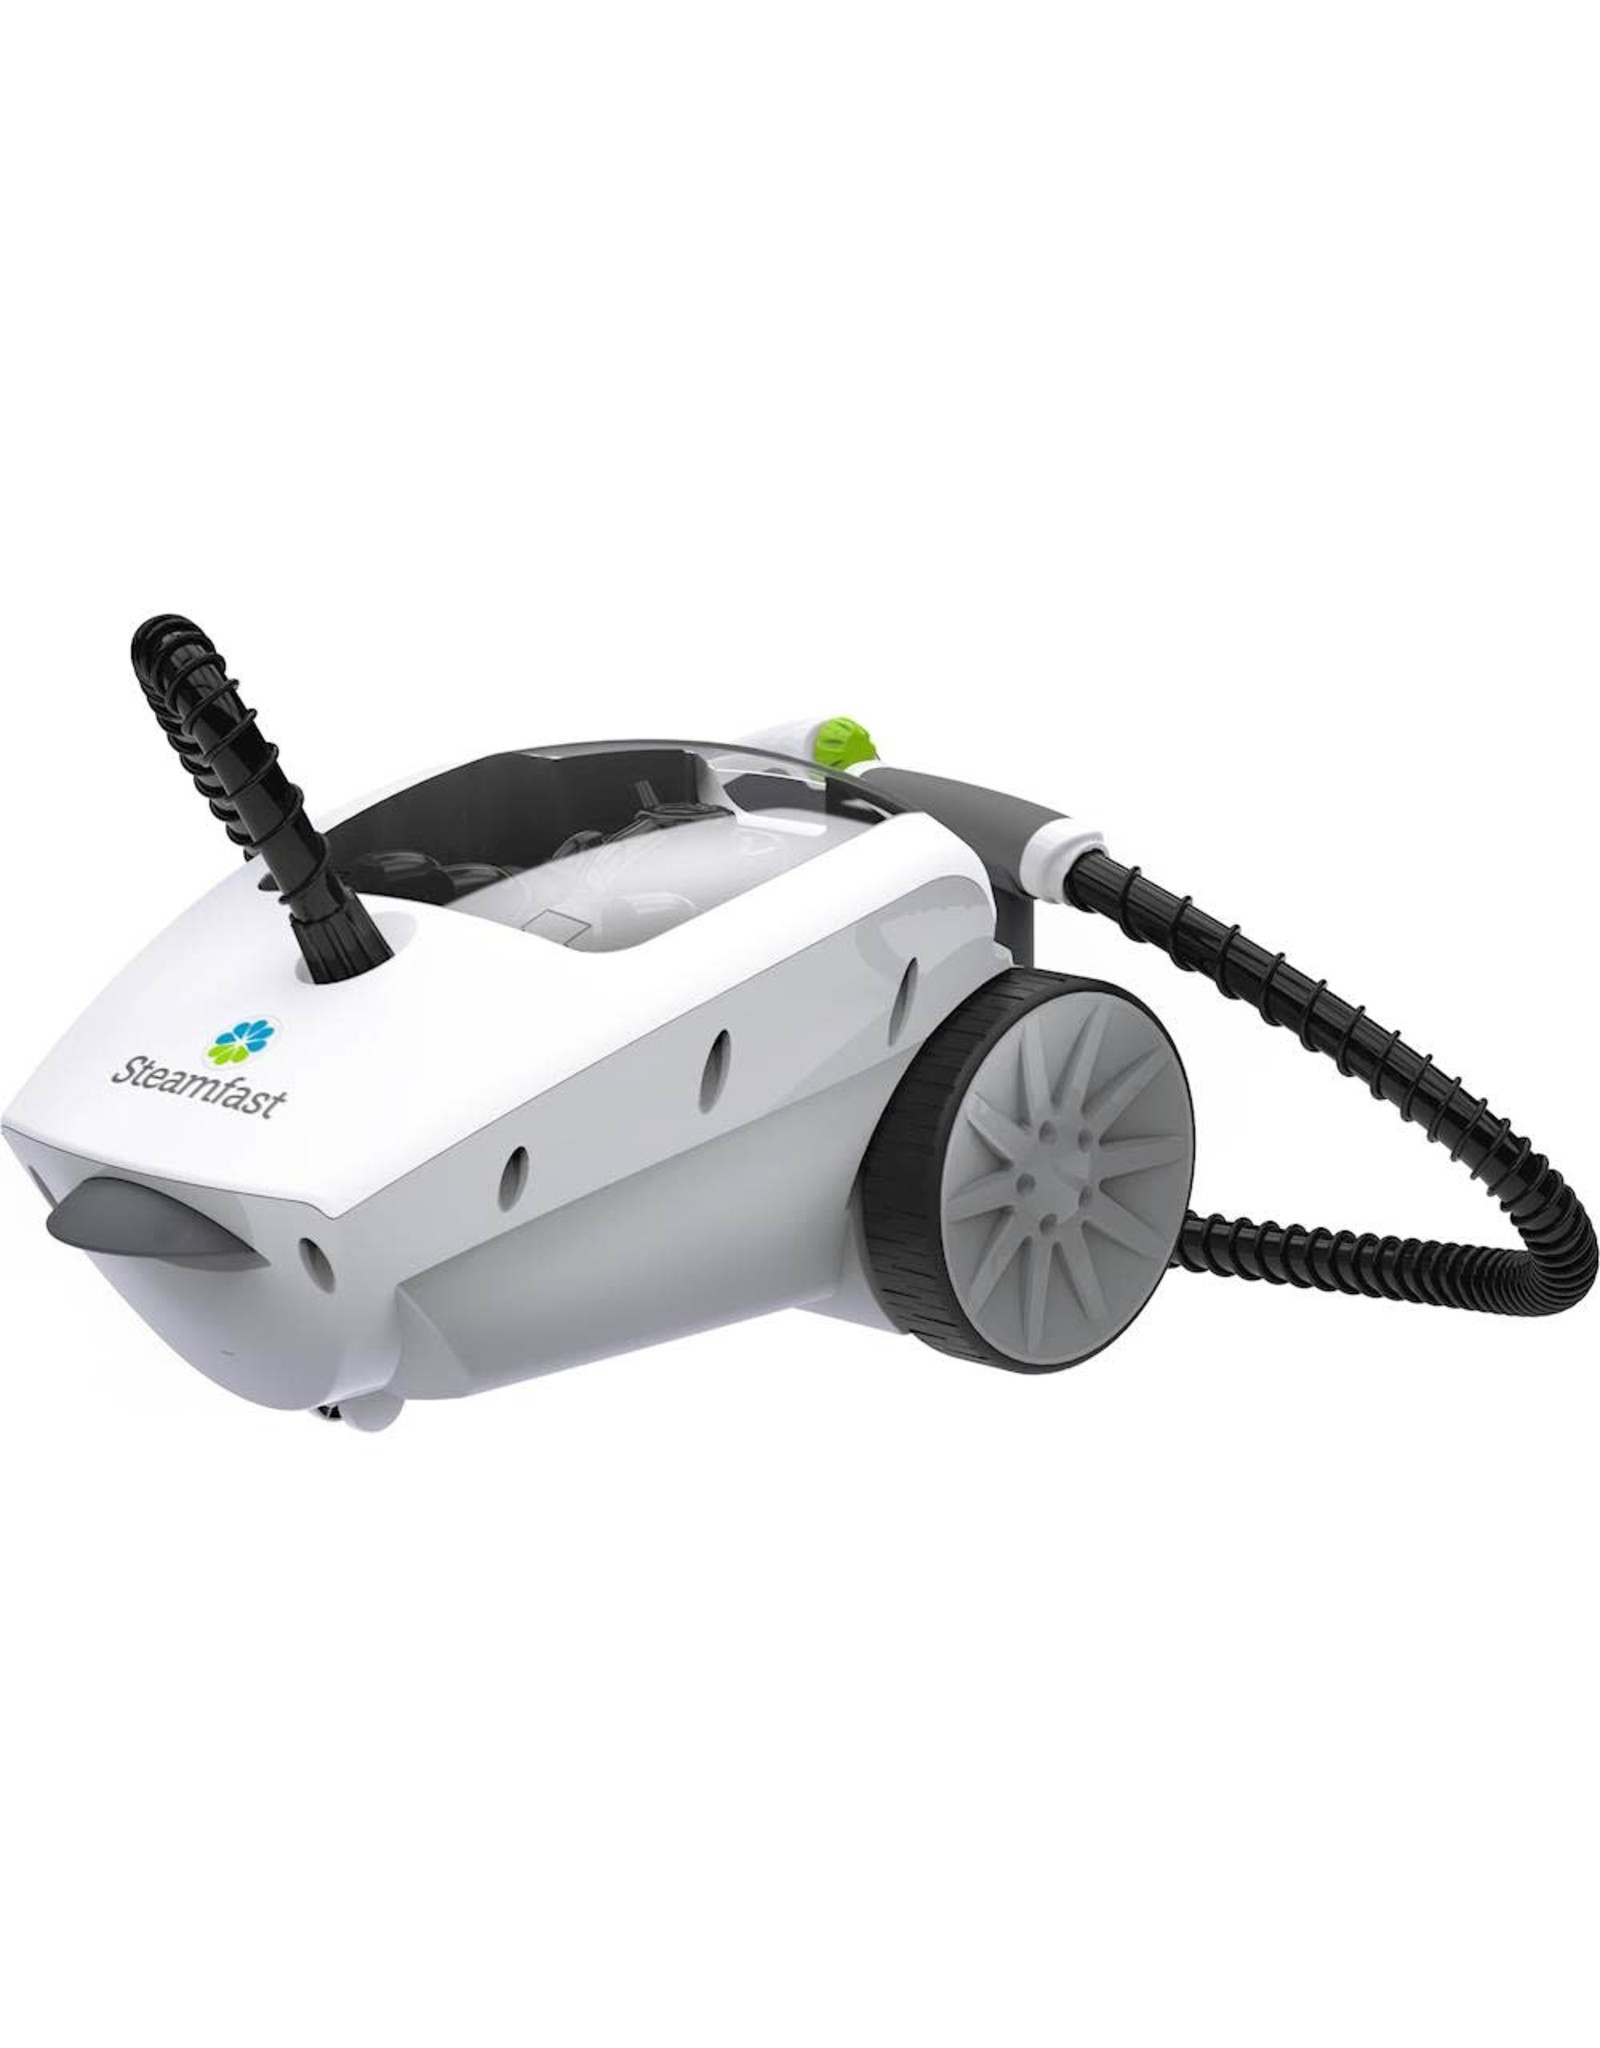 STEAMFAST SF-375 Steamfast - SF-375 Deluxe Corded Canister Steam Cleaner - White